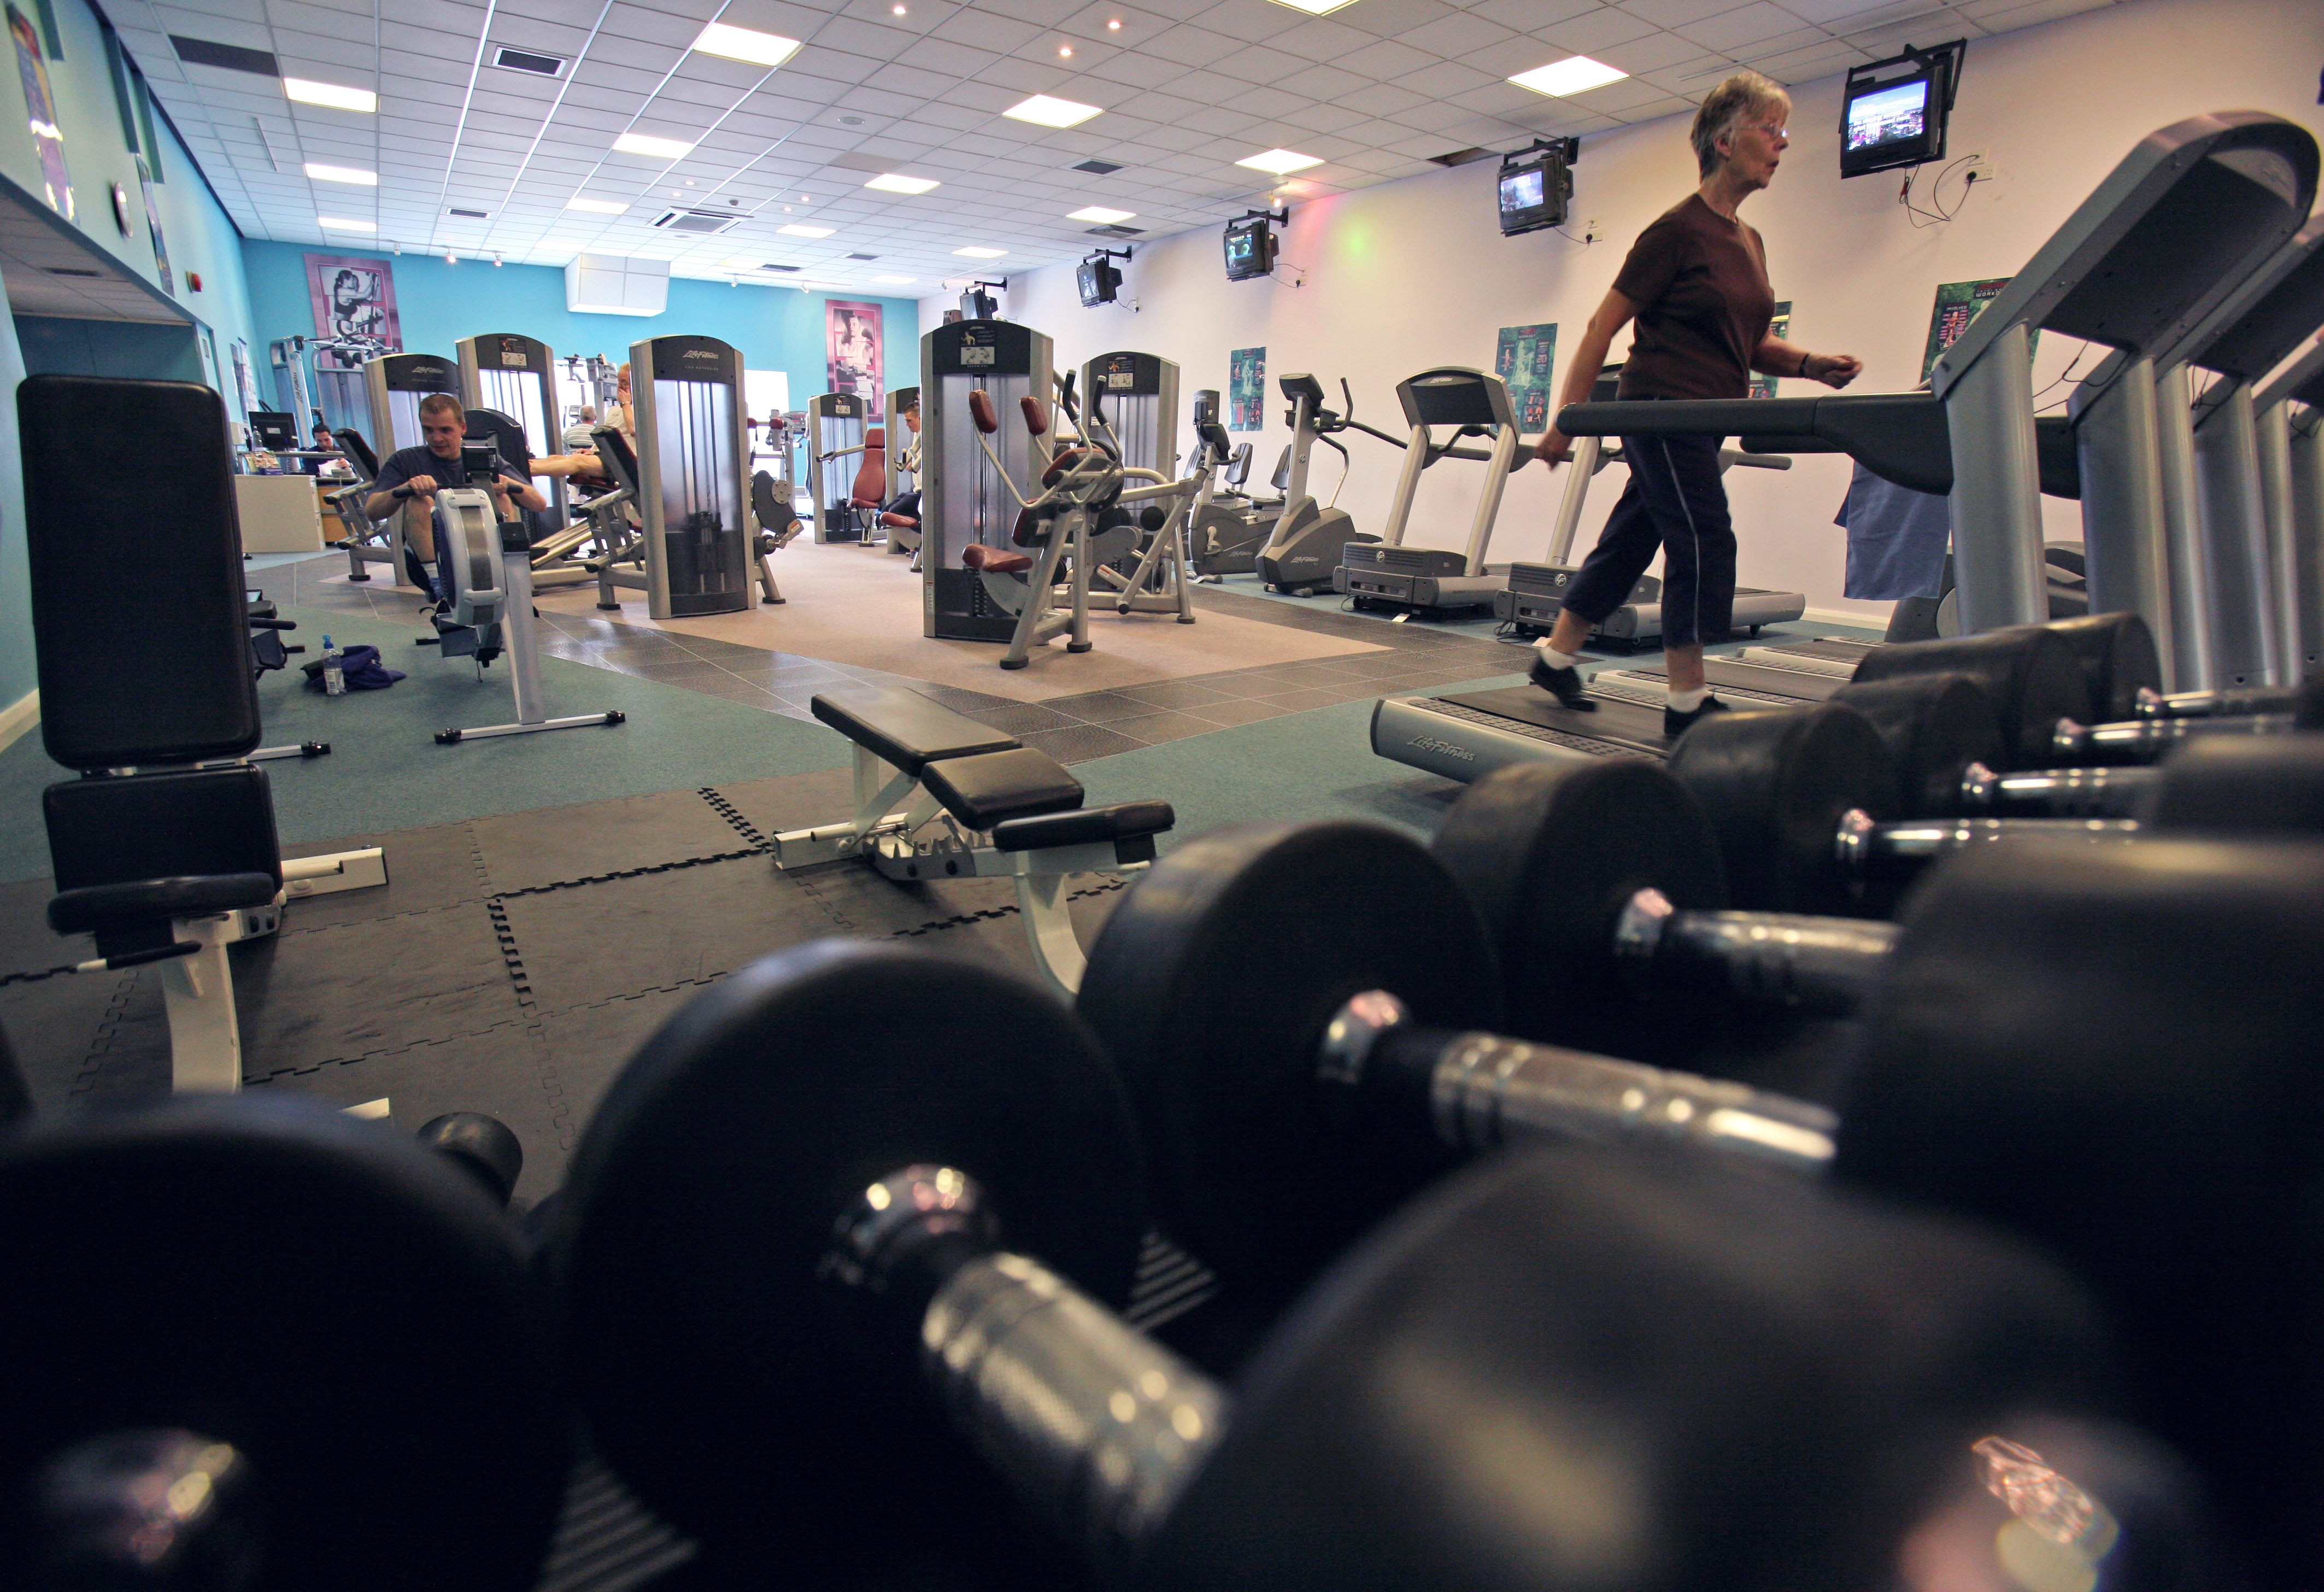 Internal view of the Newport Centre Gym